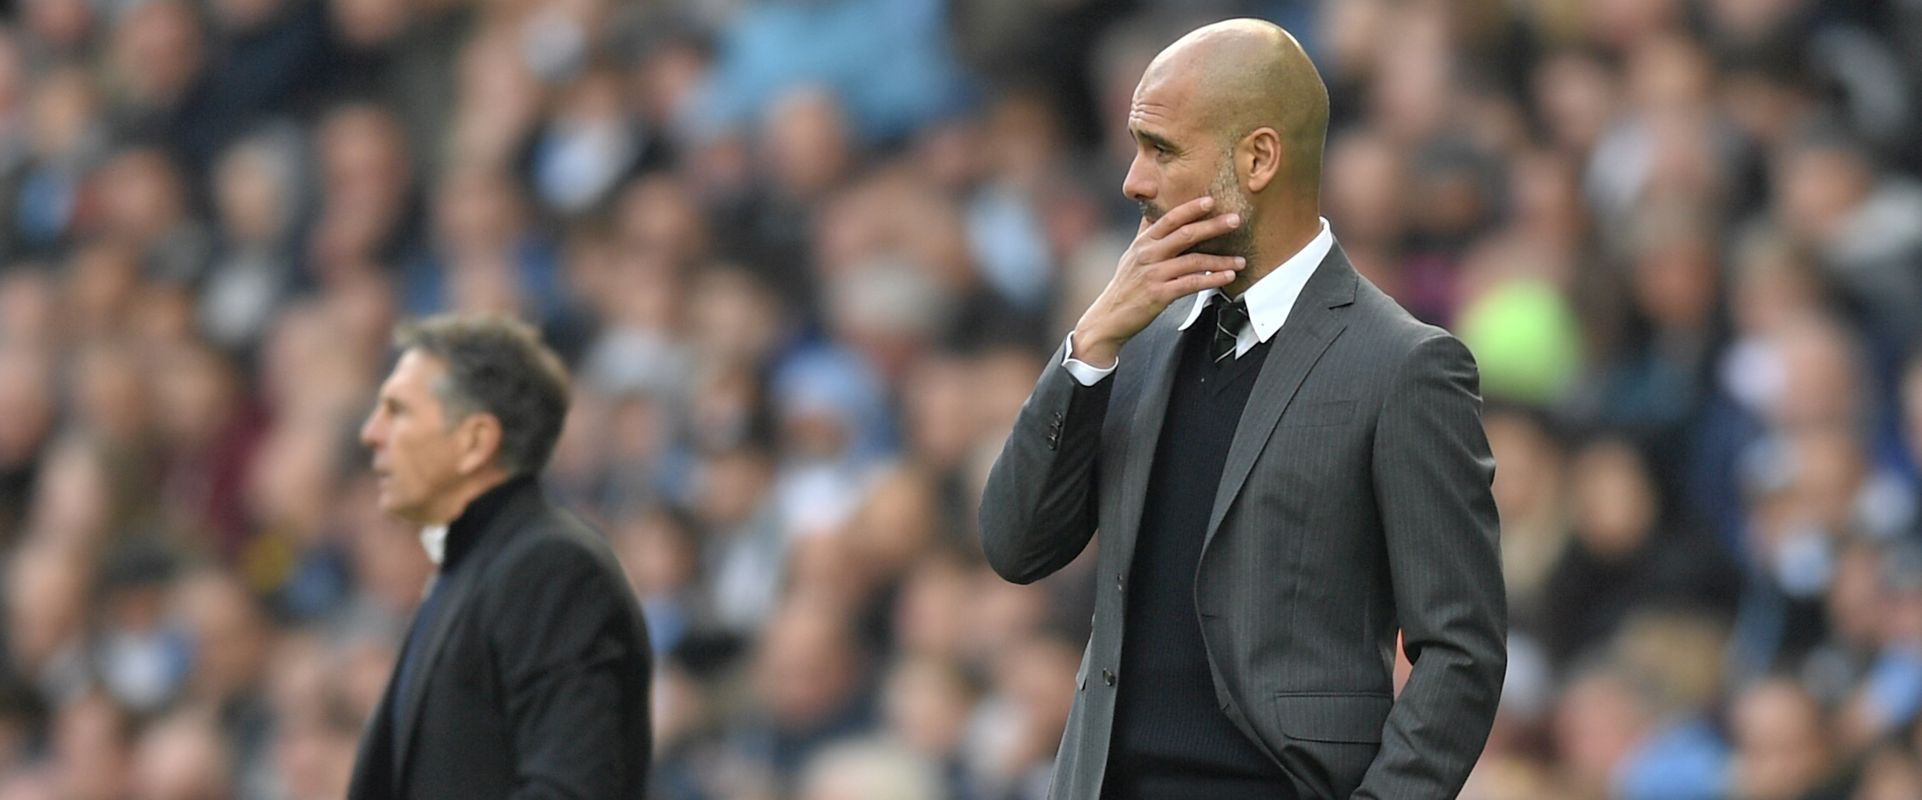 Pondering Pep - Guardiola is trying to figure out how to get City back to their early season all-conquering form.